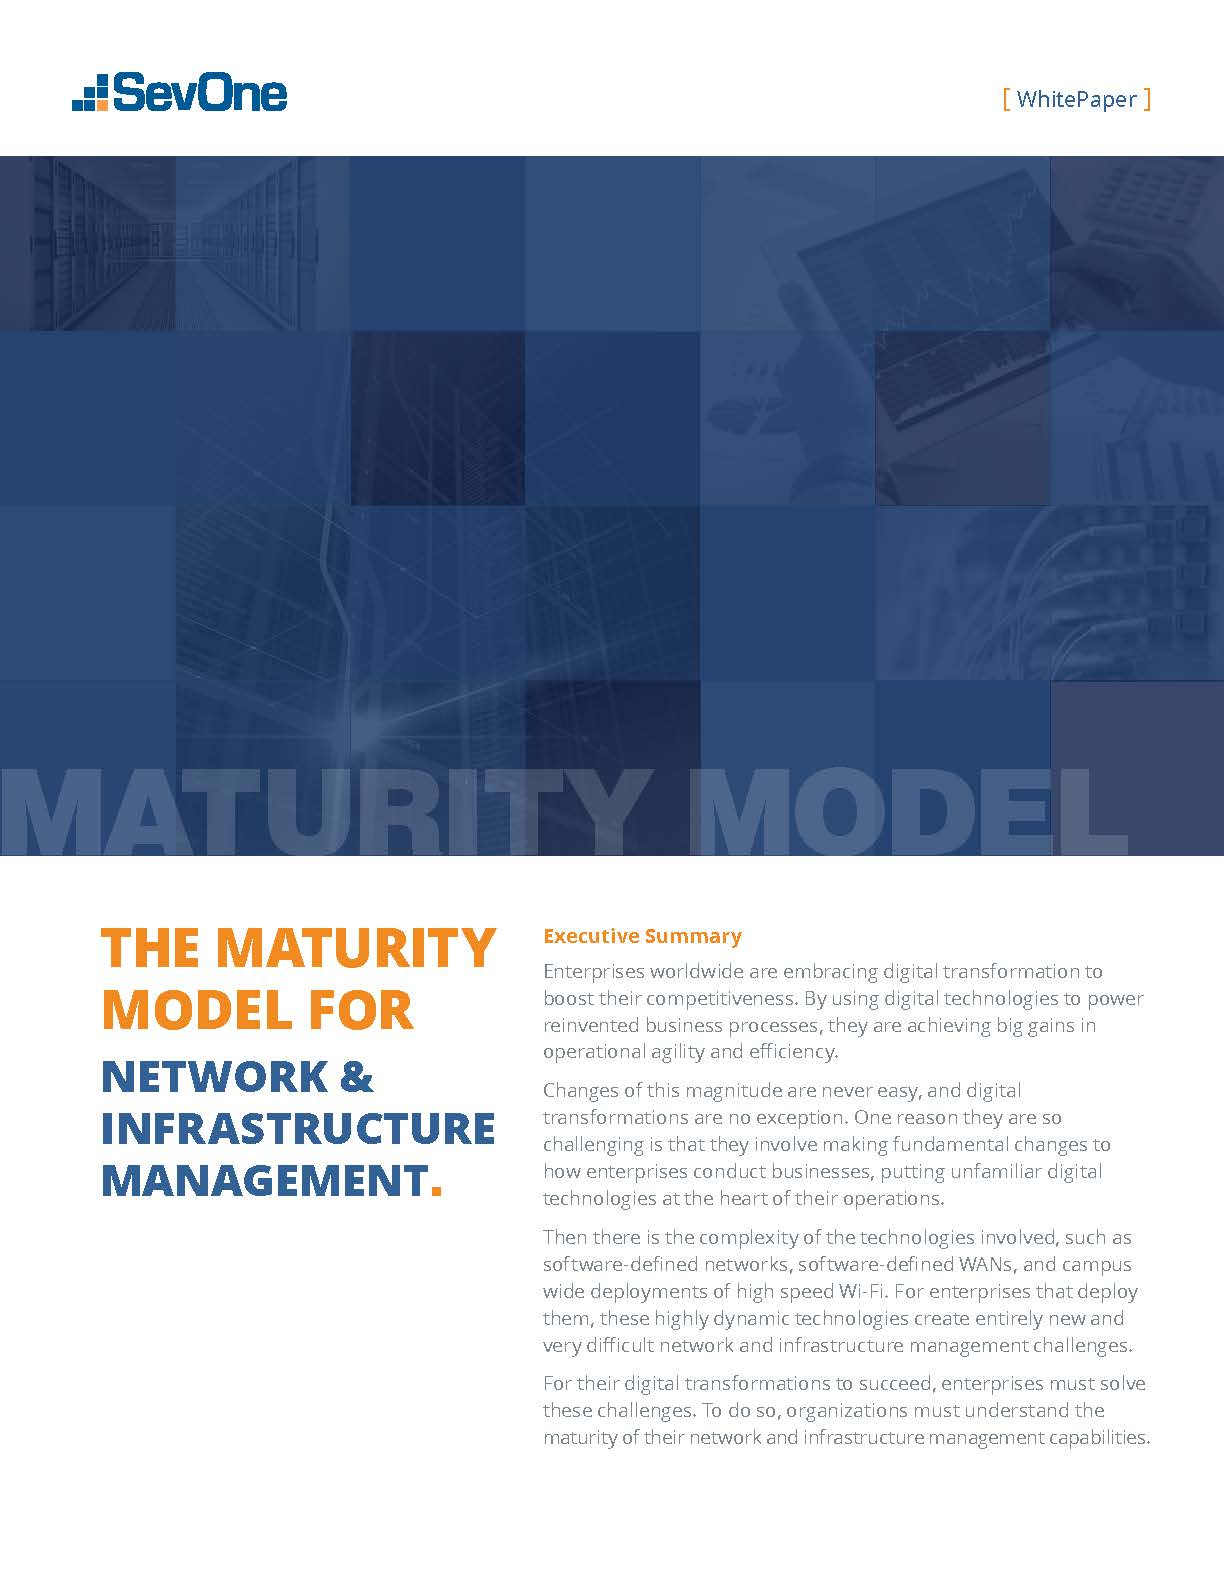 Maturity Model Cover Image